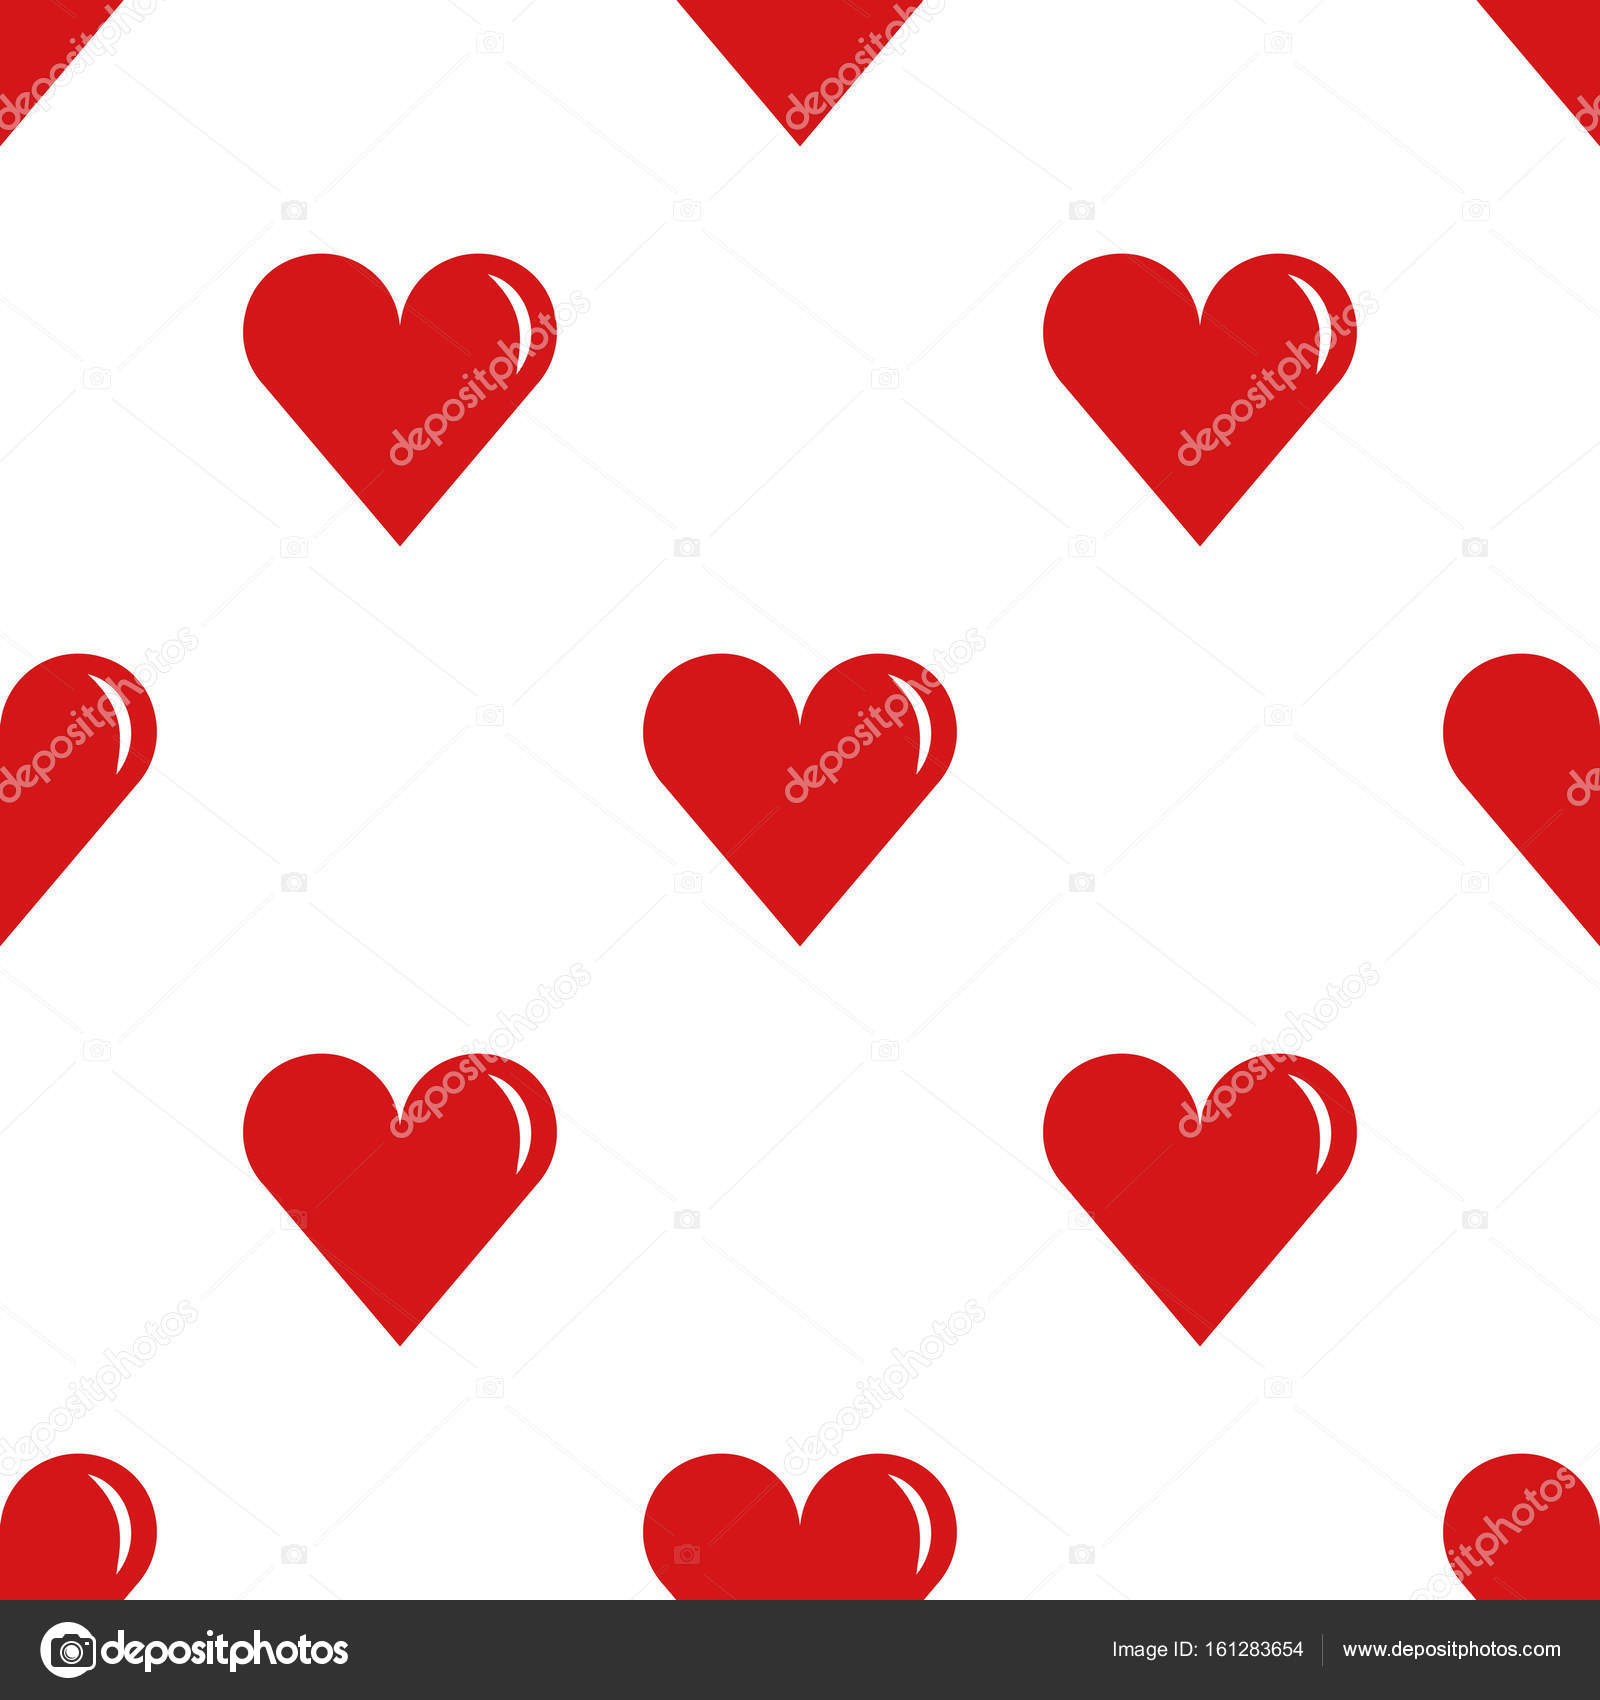 Heart shapes a symbol of love and romance stock photo heart shapes a symbol of love and romance stock photo biocorpaavc Images